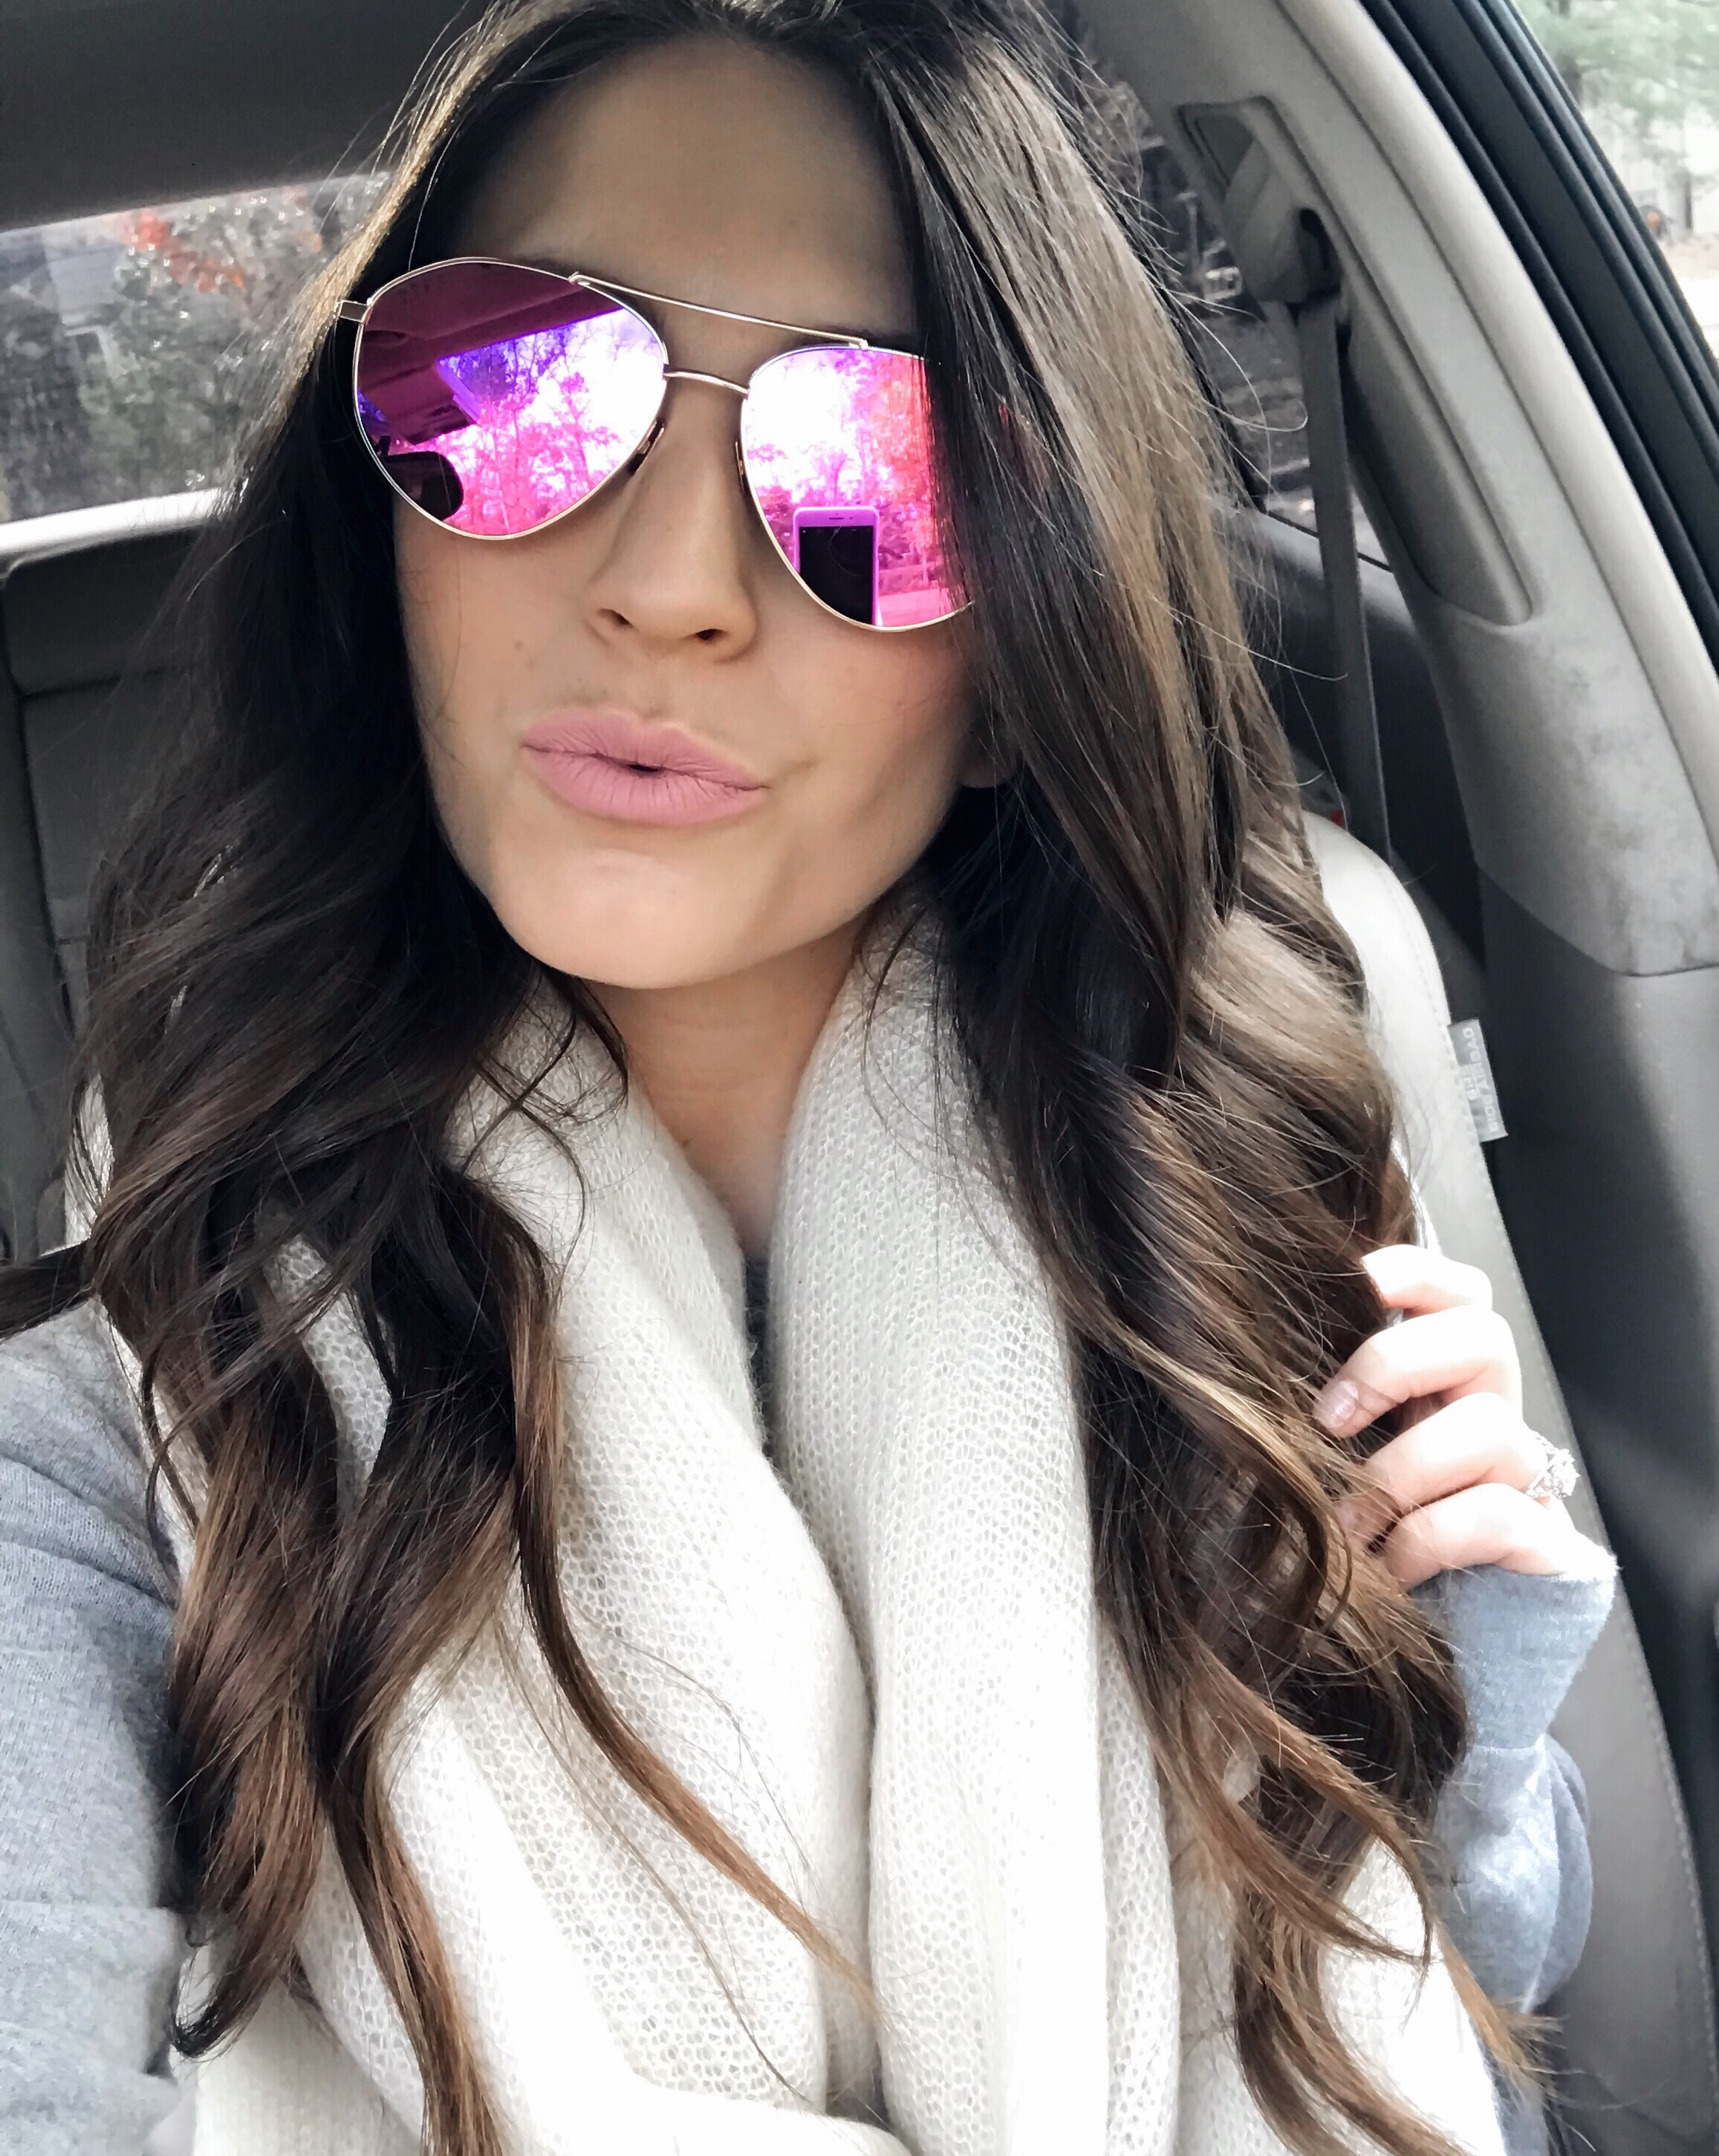 My Outfits On Sale | Pine Barren Beauty | diff eyewear sunglasses, Black Friday sales, hair goals